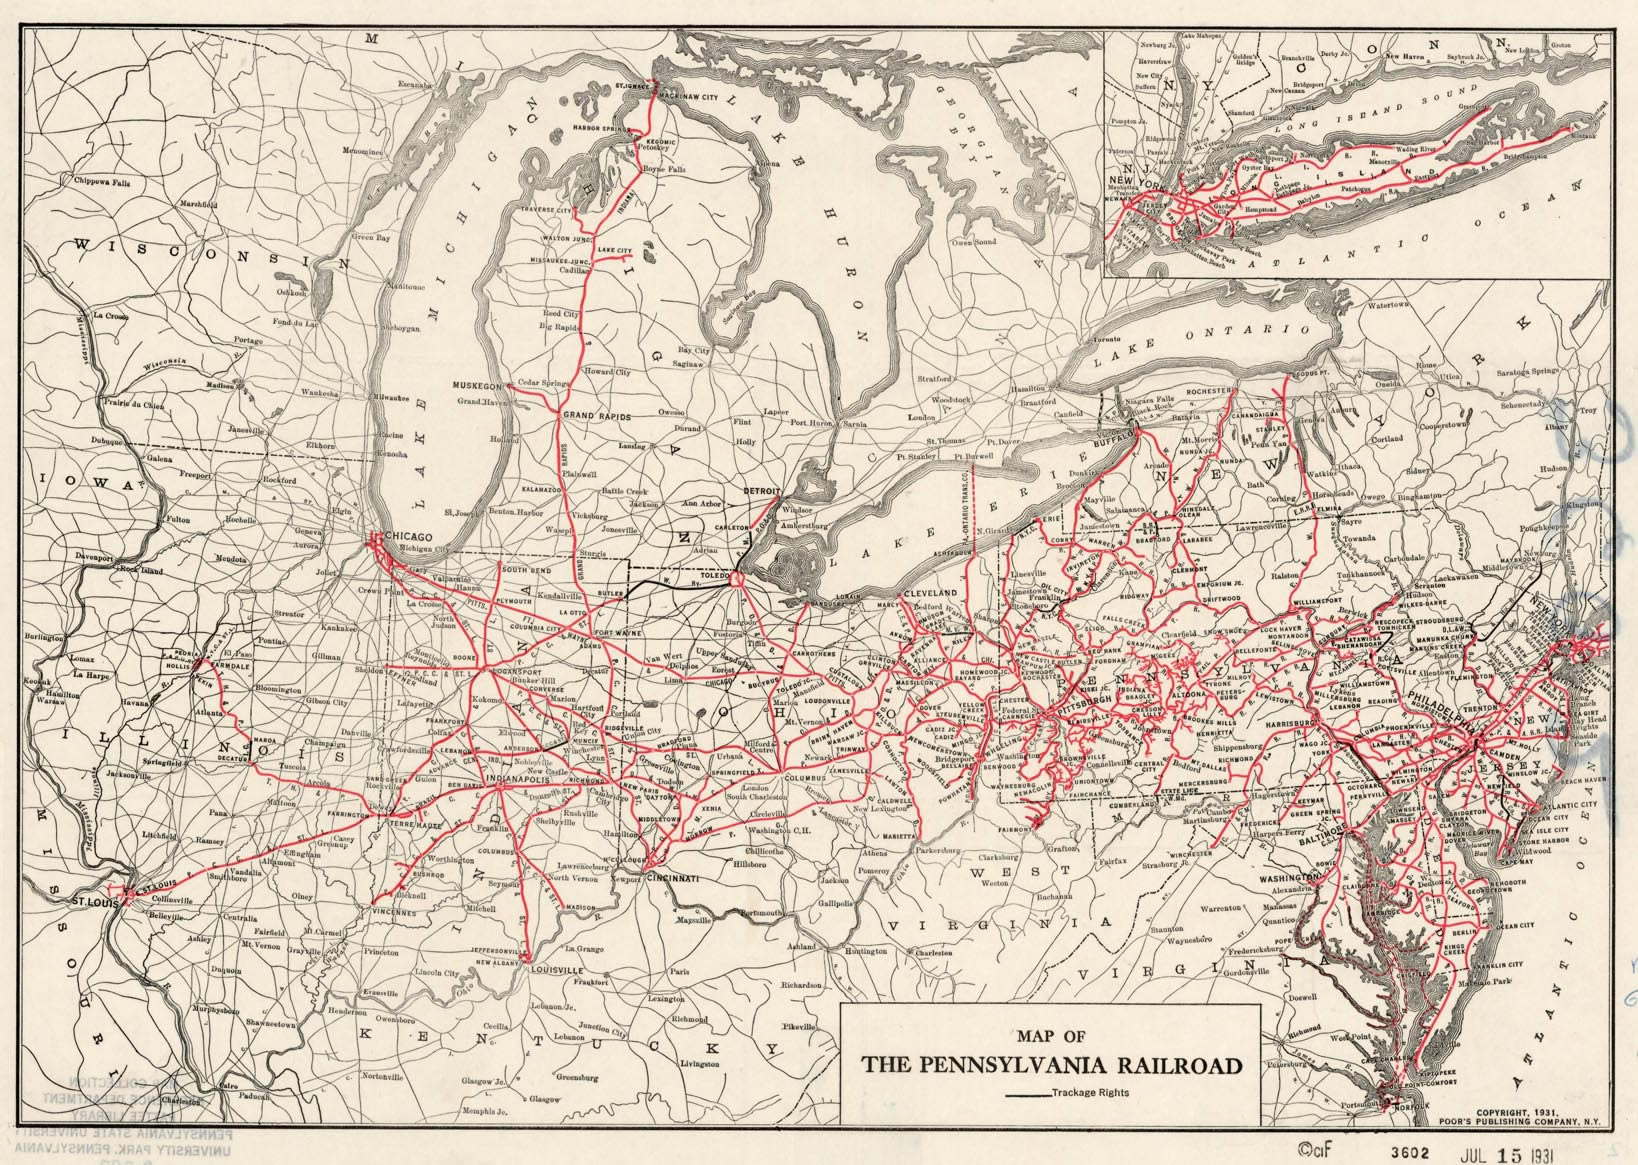 PA Railroad route map of 1931